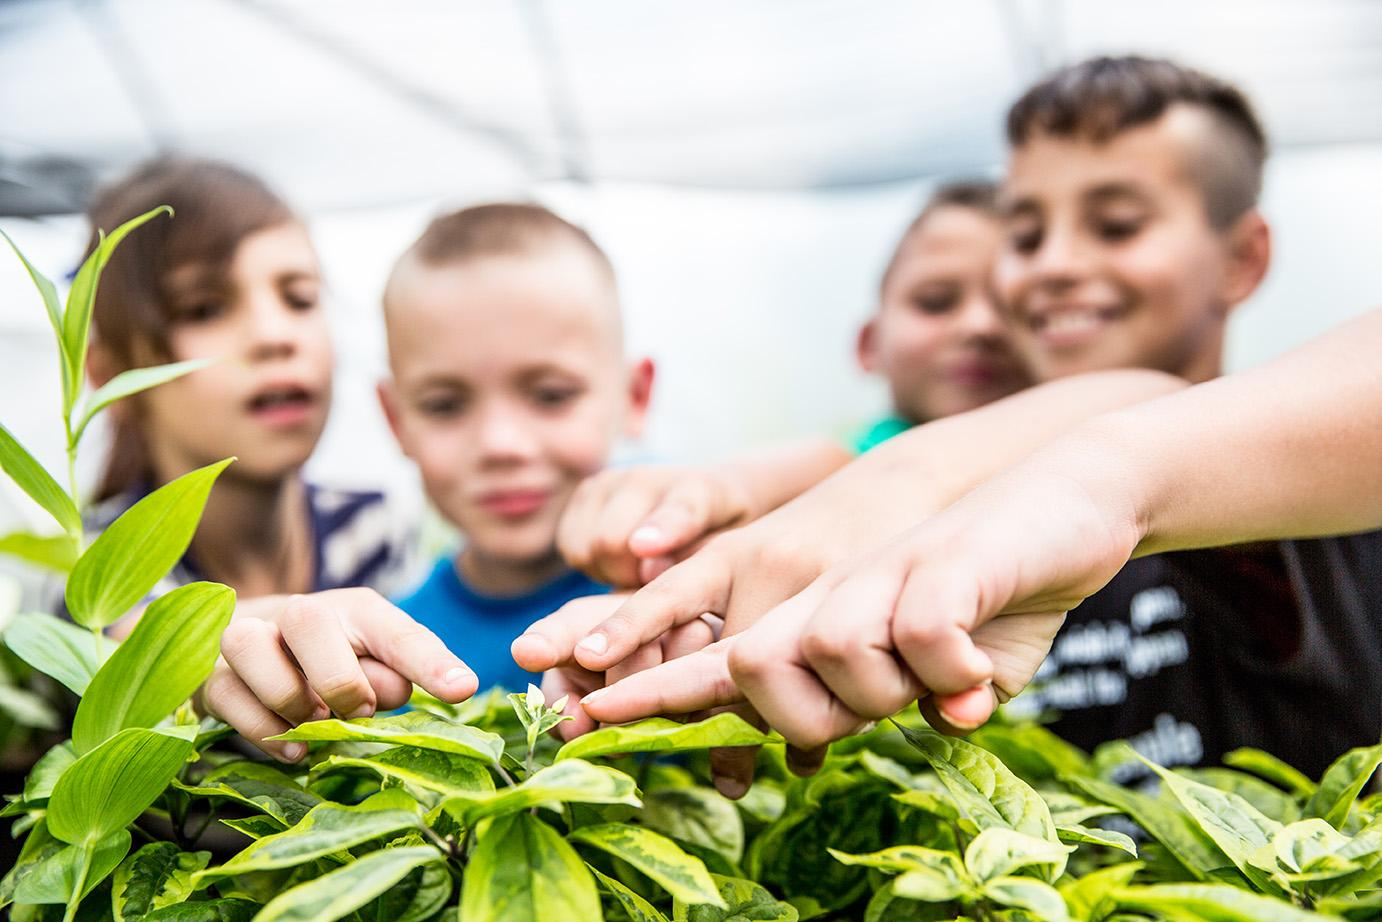 children pointing to parts of a plant